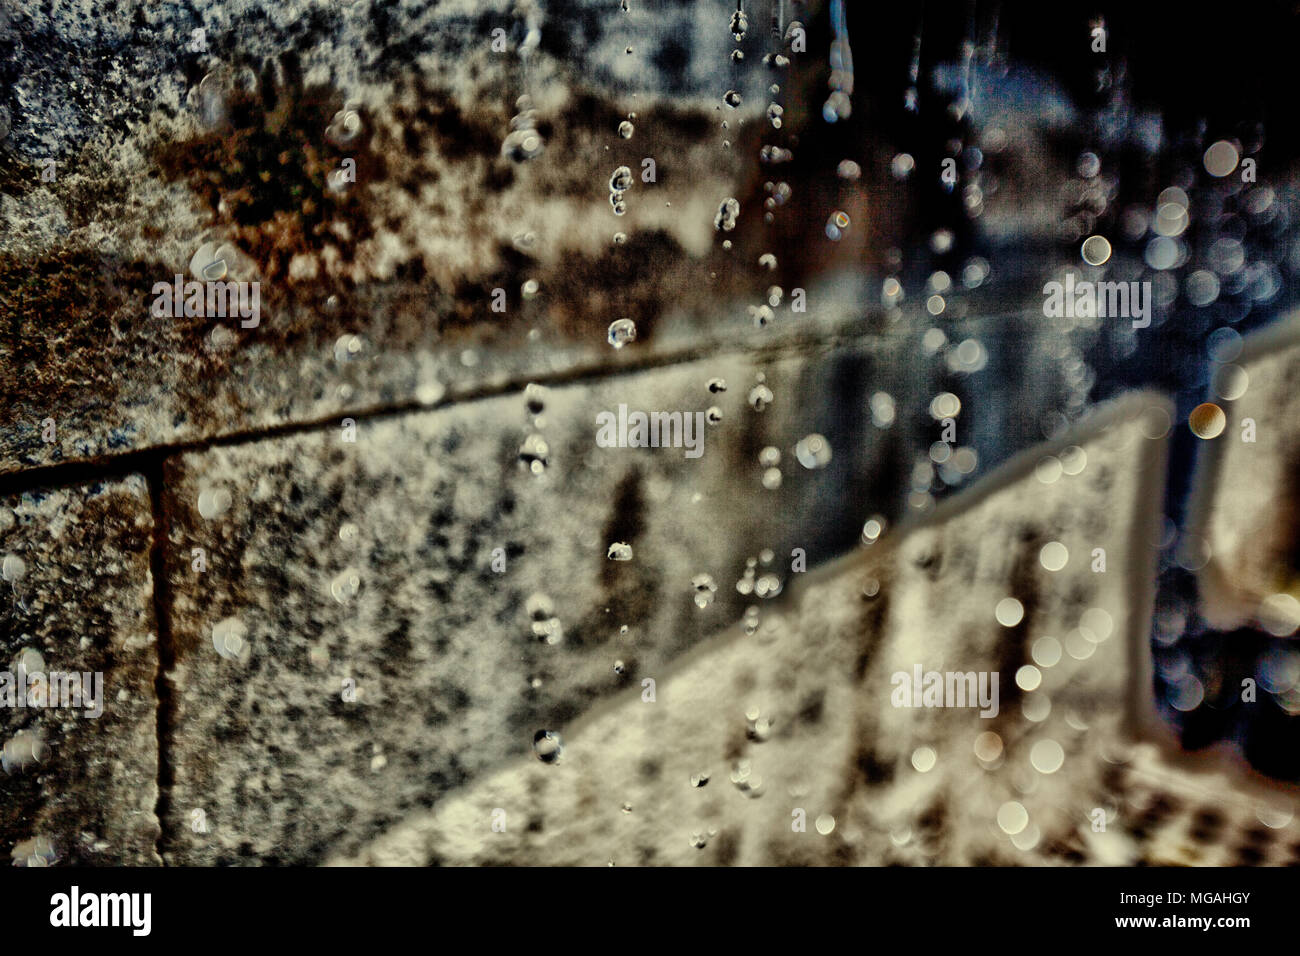 Water drops rain, , droplet, liquid, nature, drop, background, wet, white, illustration, isolated, natural, transparent, dew - Stock Image